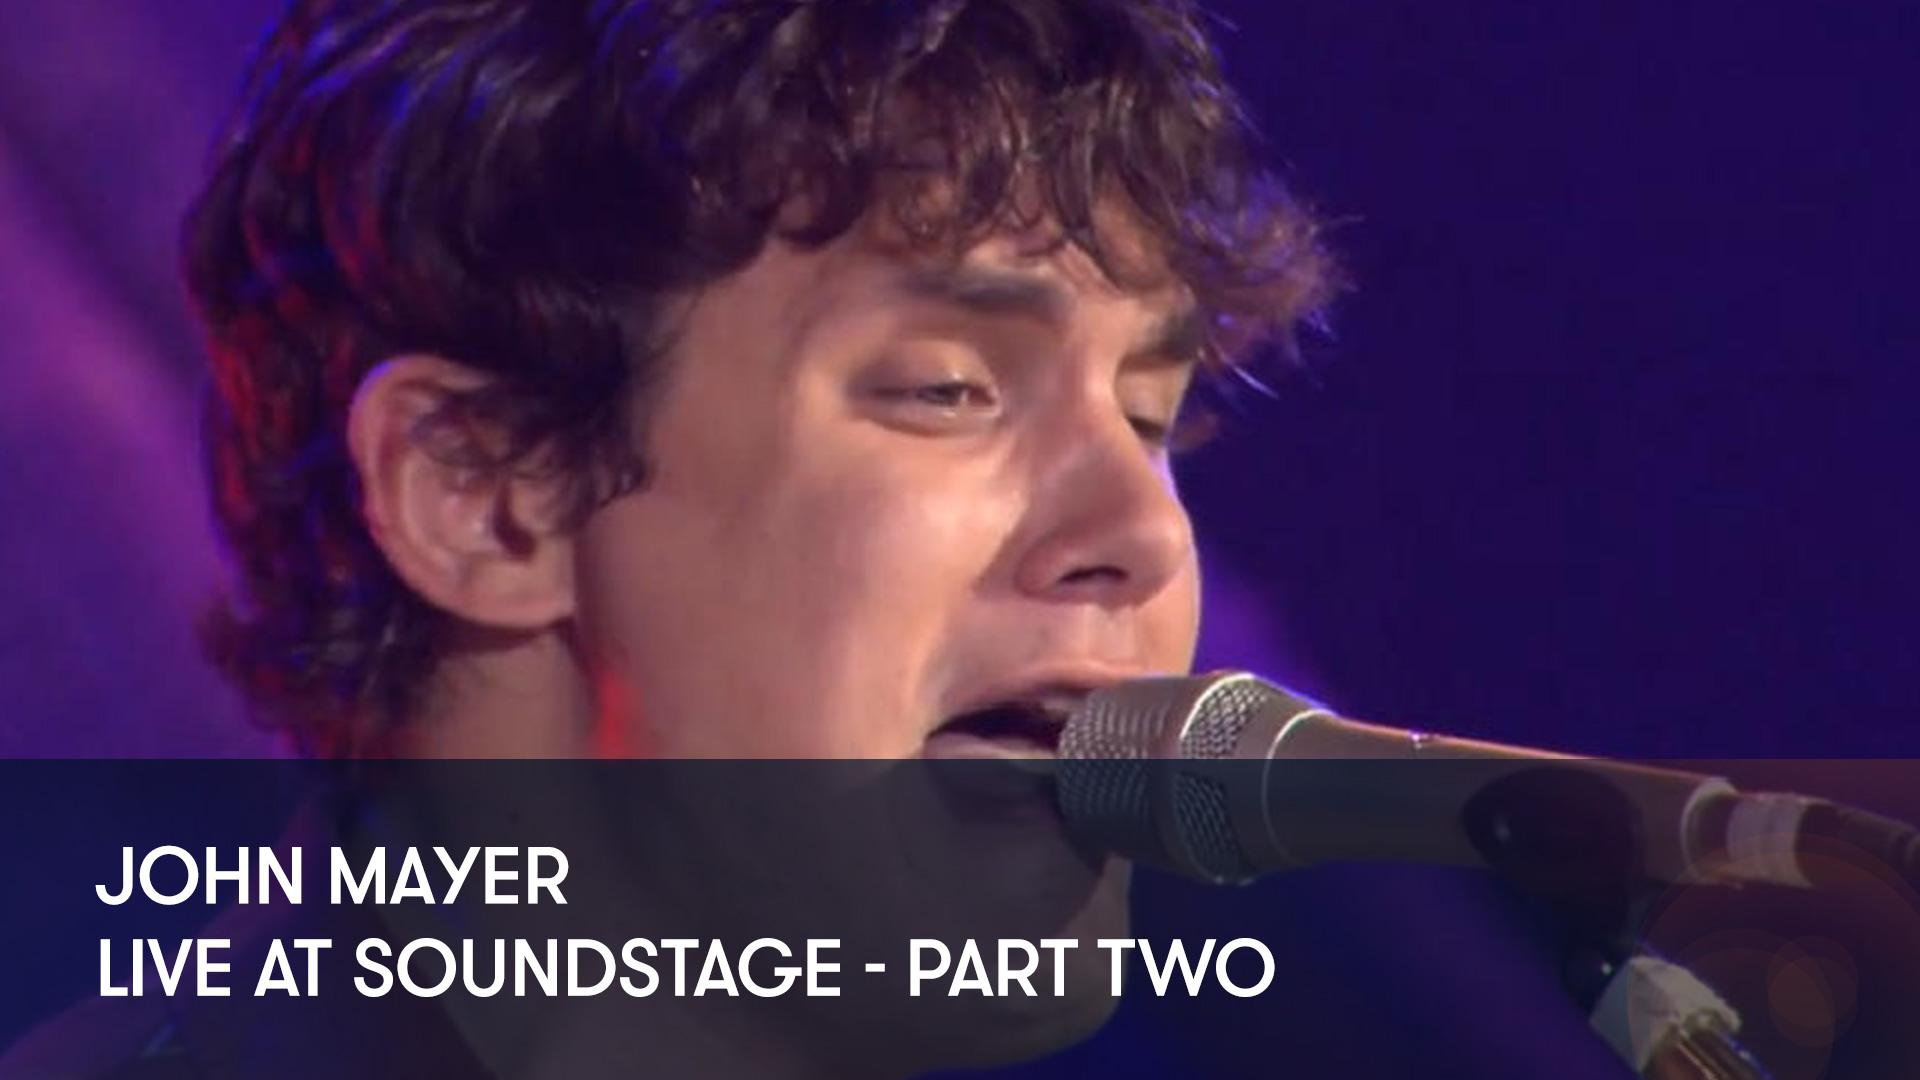 Stream And Watch John Mayer - Live at Soundstage - Part Two